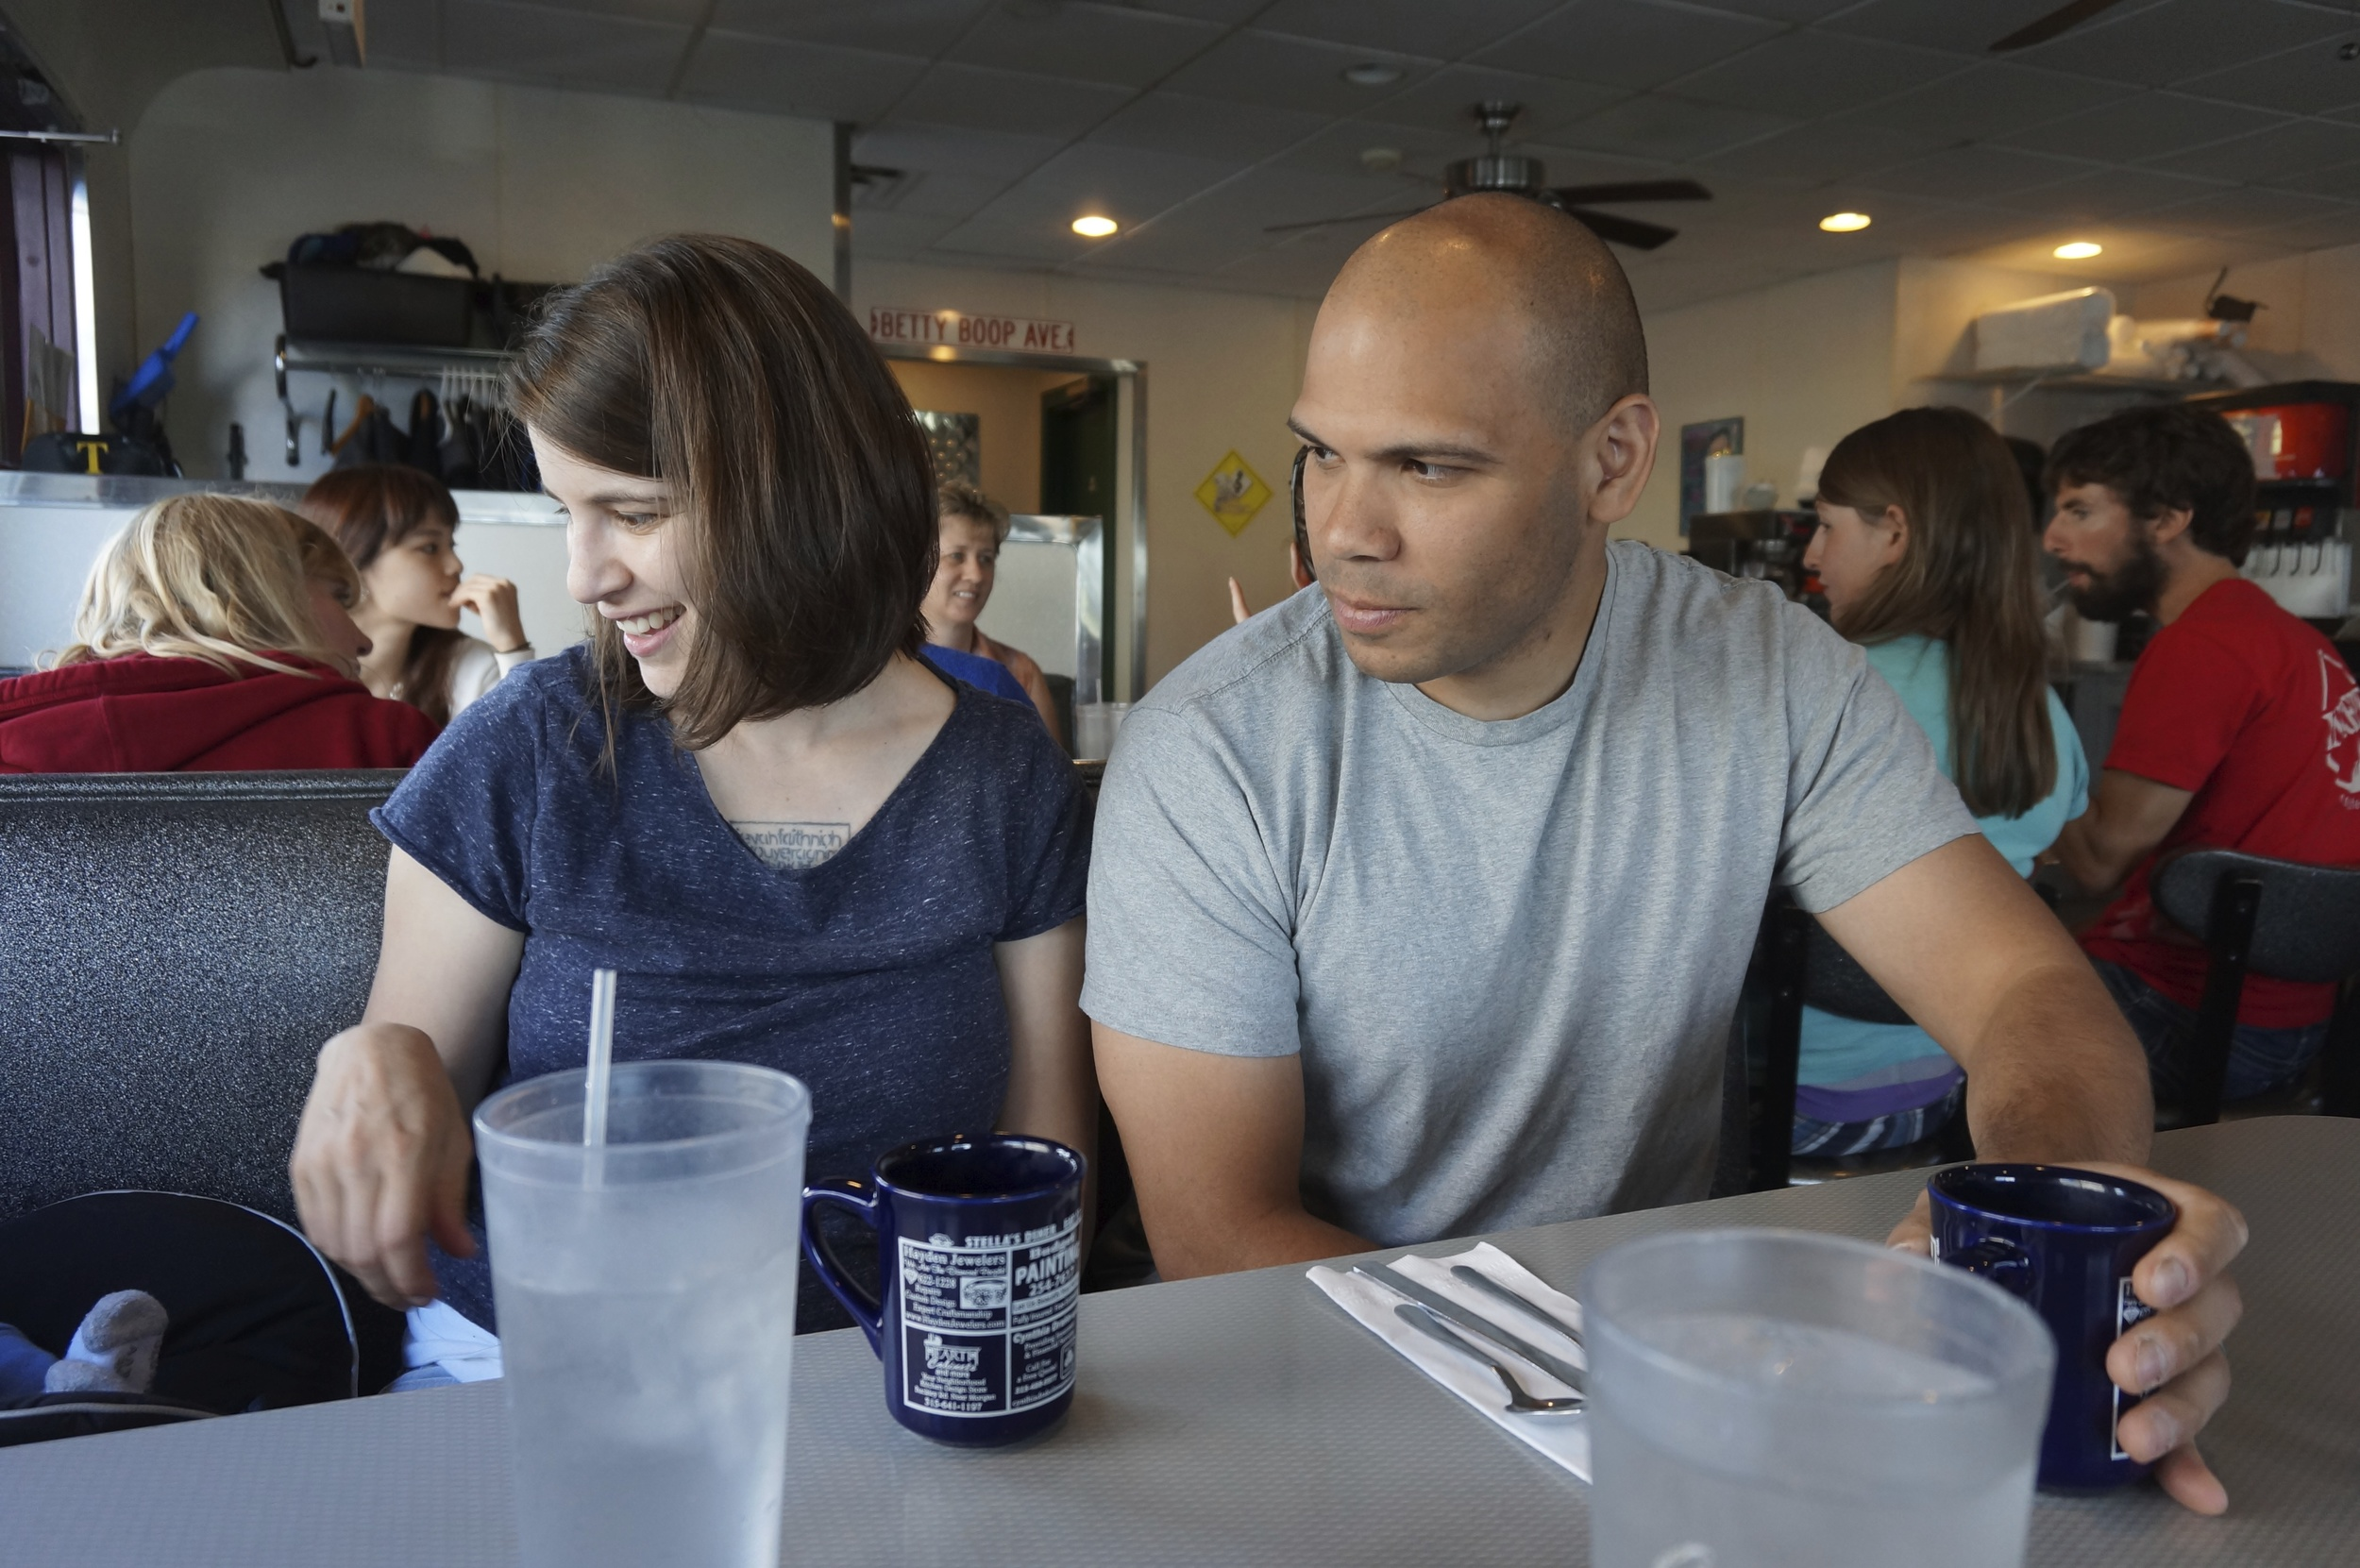 Rachelle & Josh keeping an eye on their three-monther at the diner.